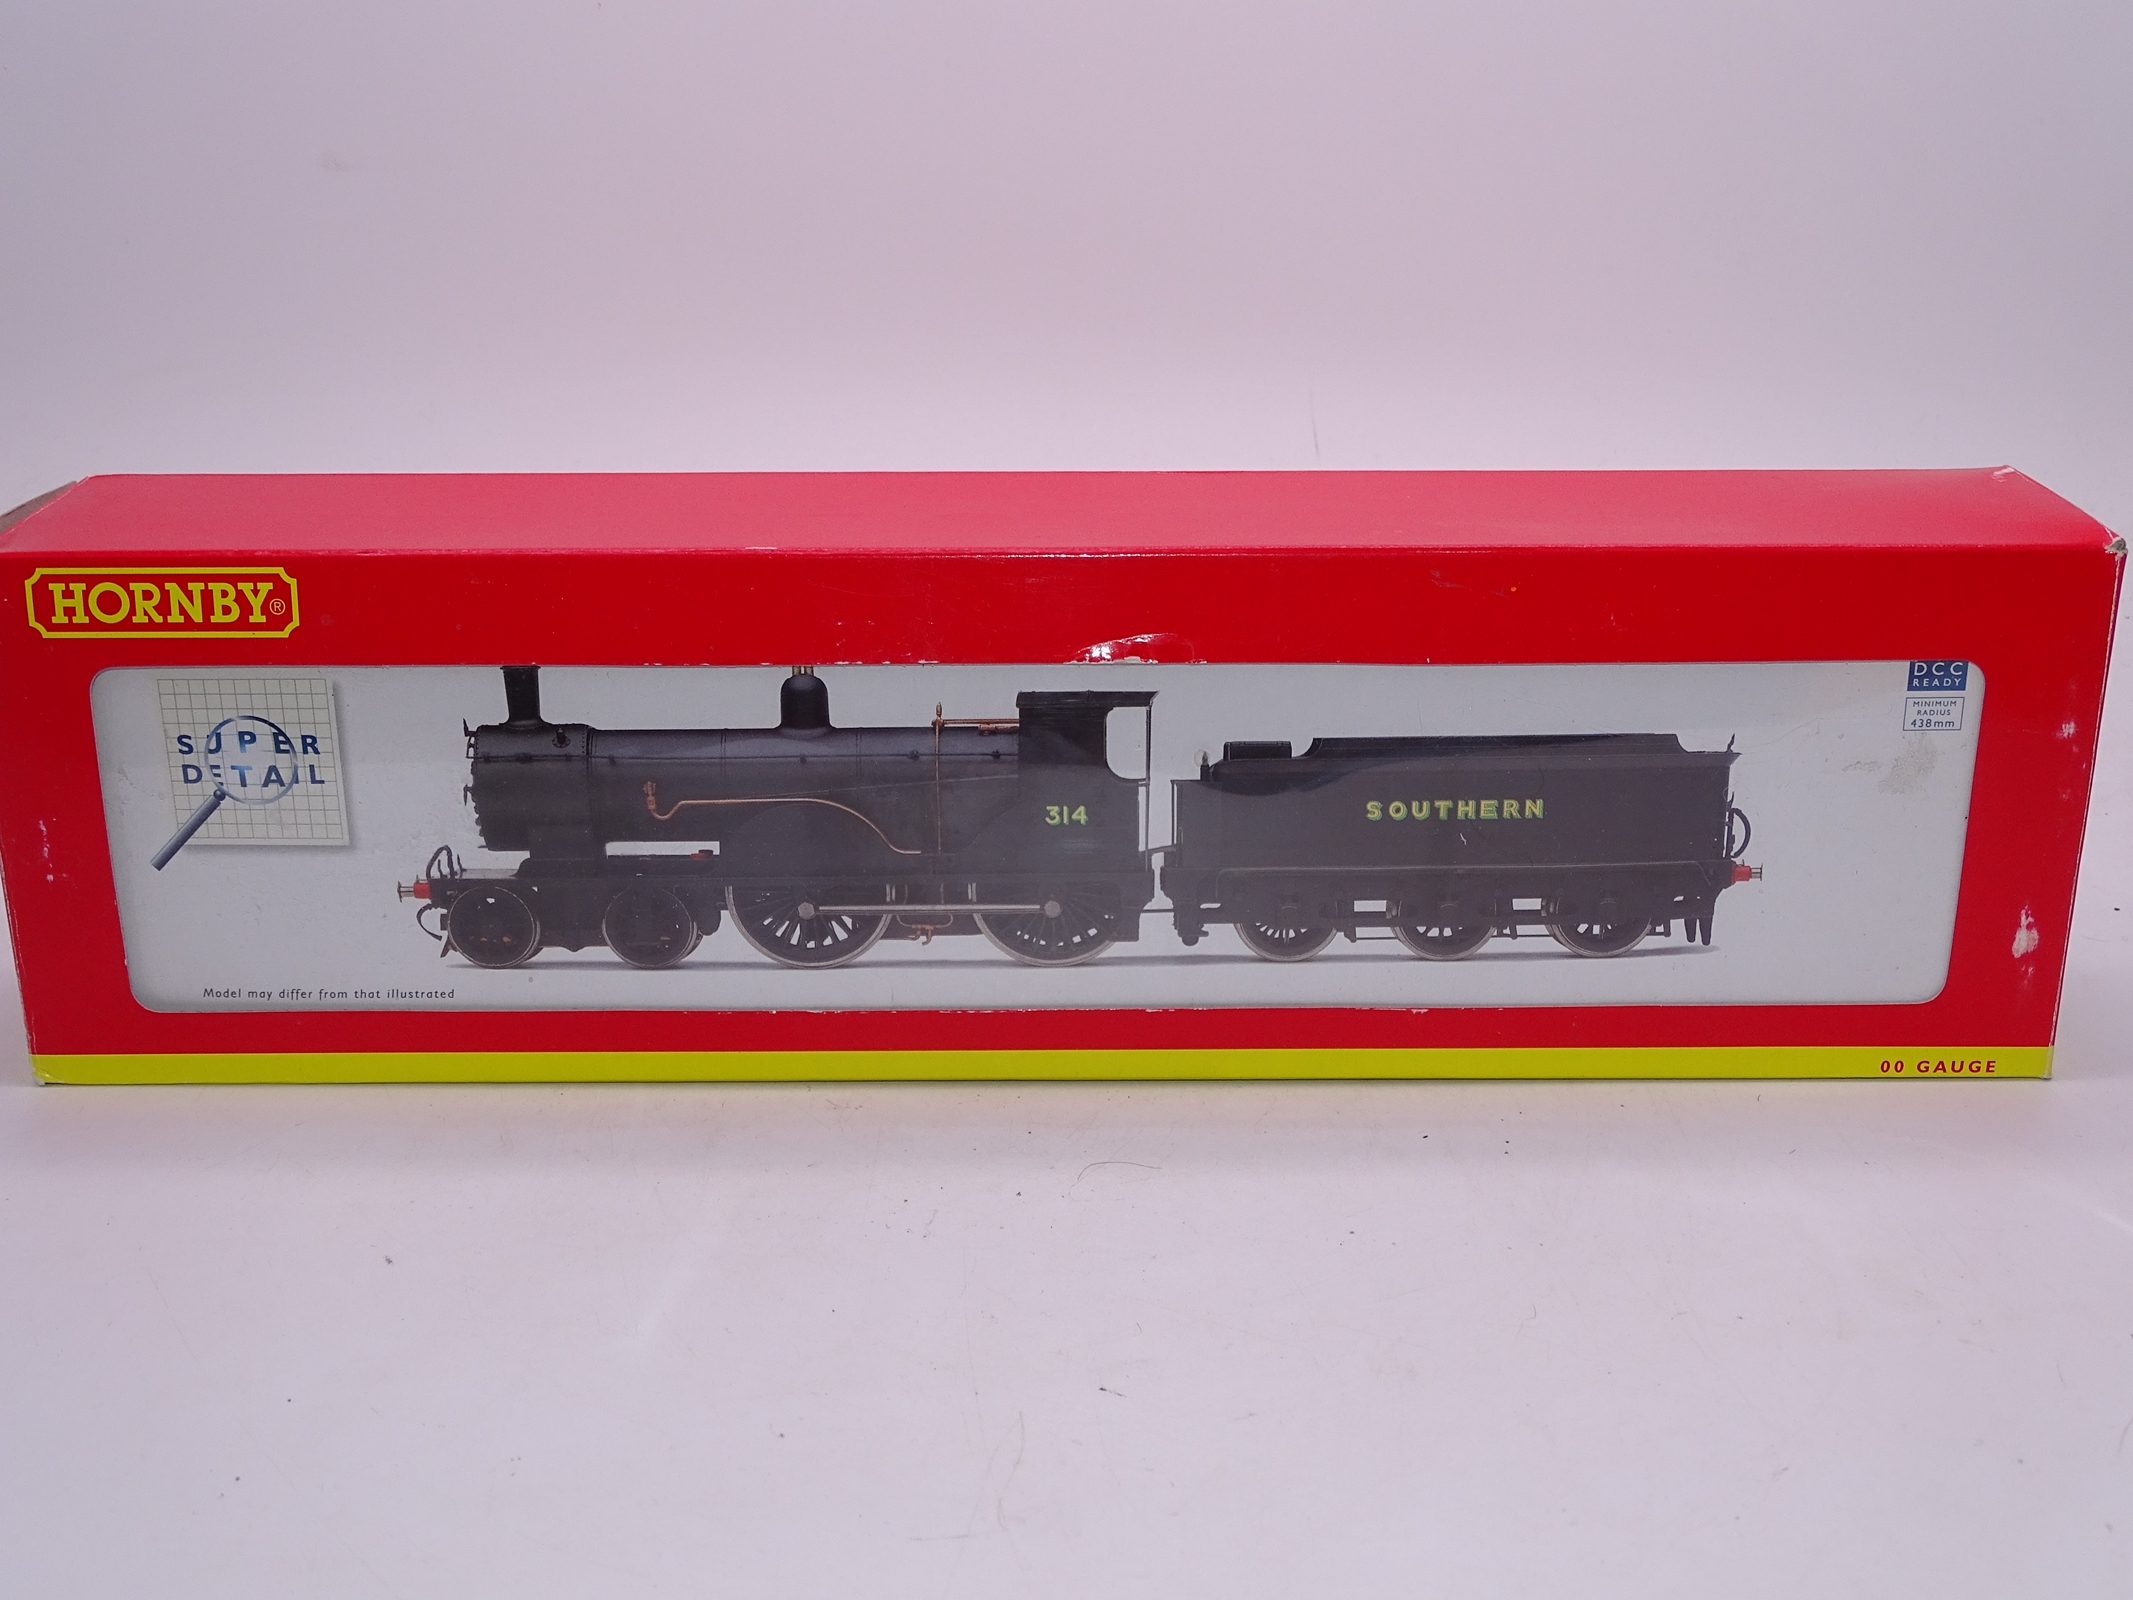 Lot 45 - OO Gauge -A Hornby R2829 Class T9 steam locomotive in Southern Railway livery - numbered 314 - VG in